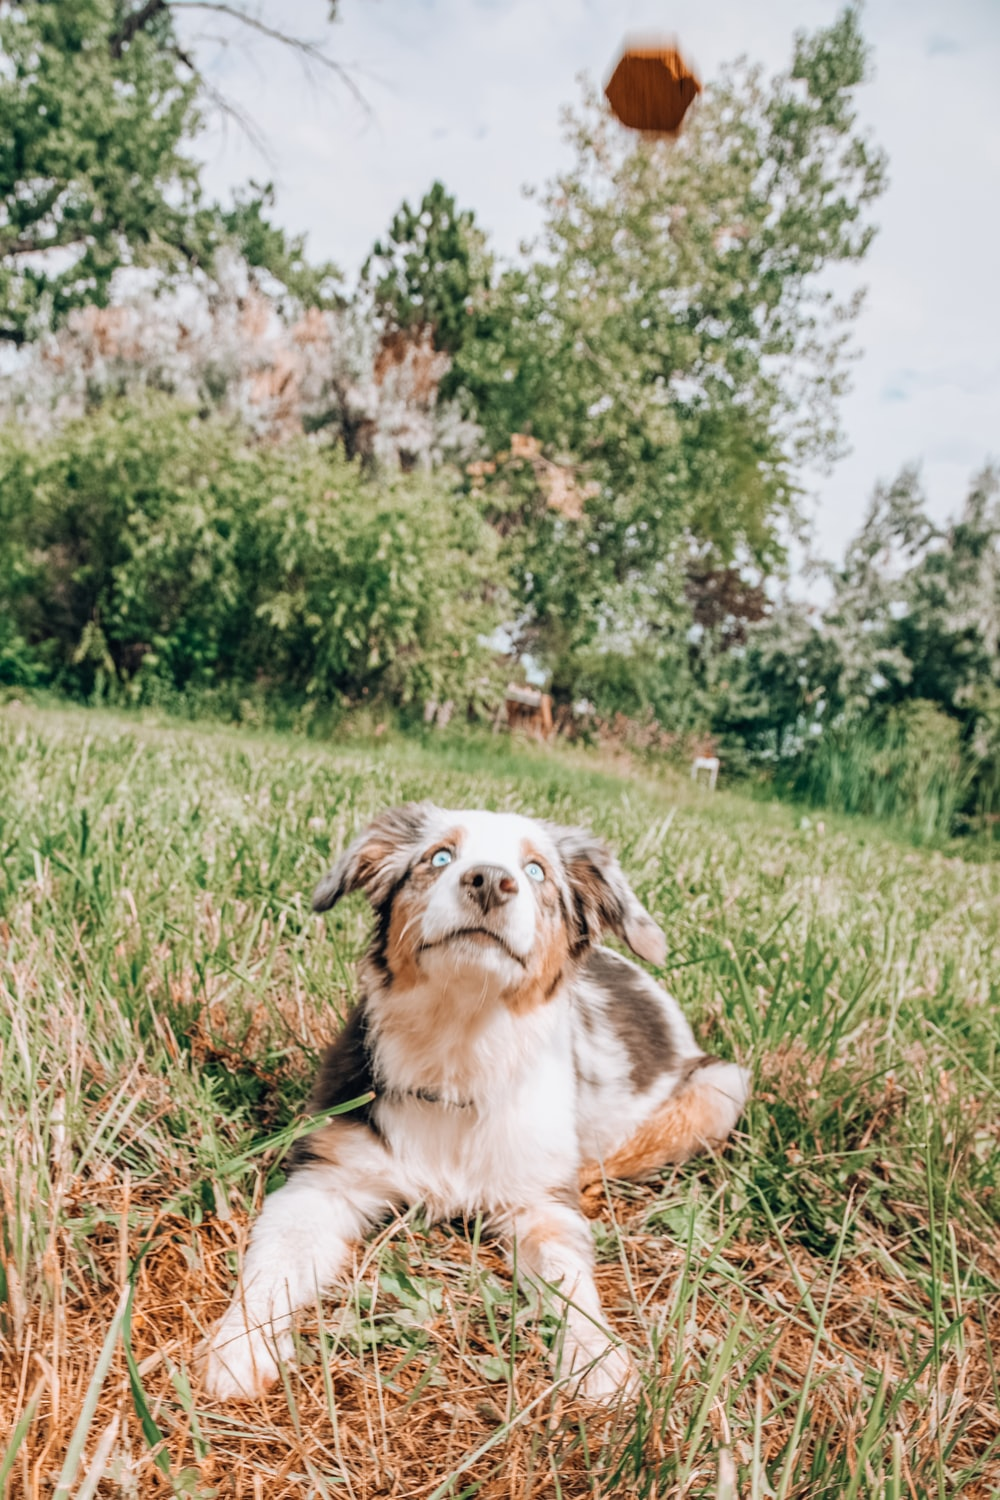 white and brown long coated dog lying on green grass field during daytime